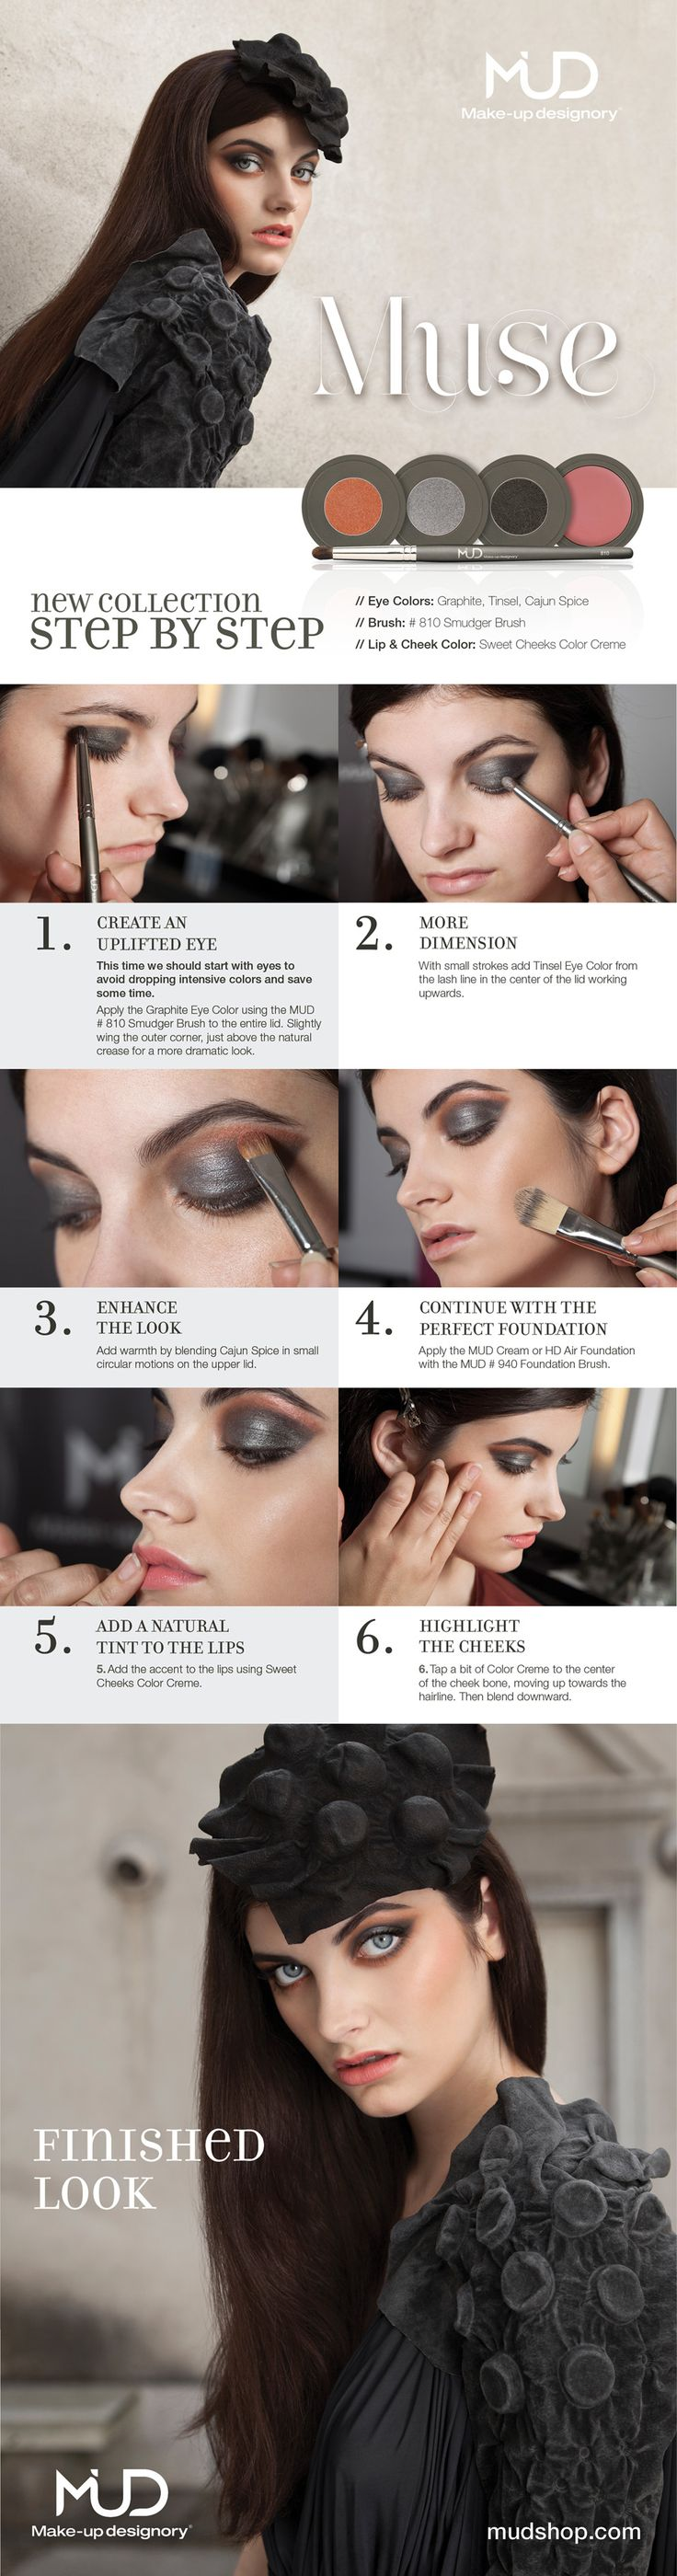 MUD Cosmetics MUSE How-to Make-up Tutorial Card